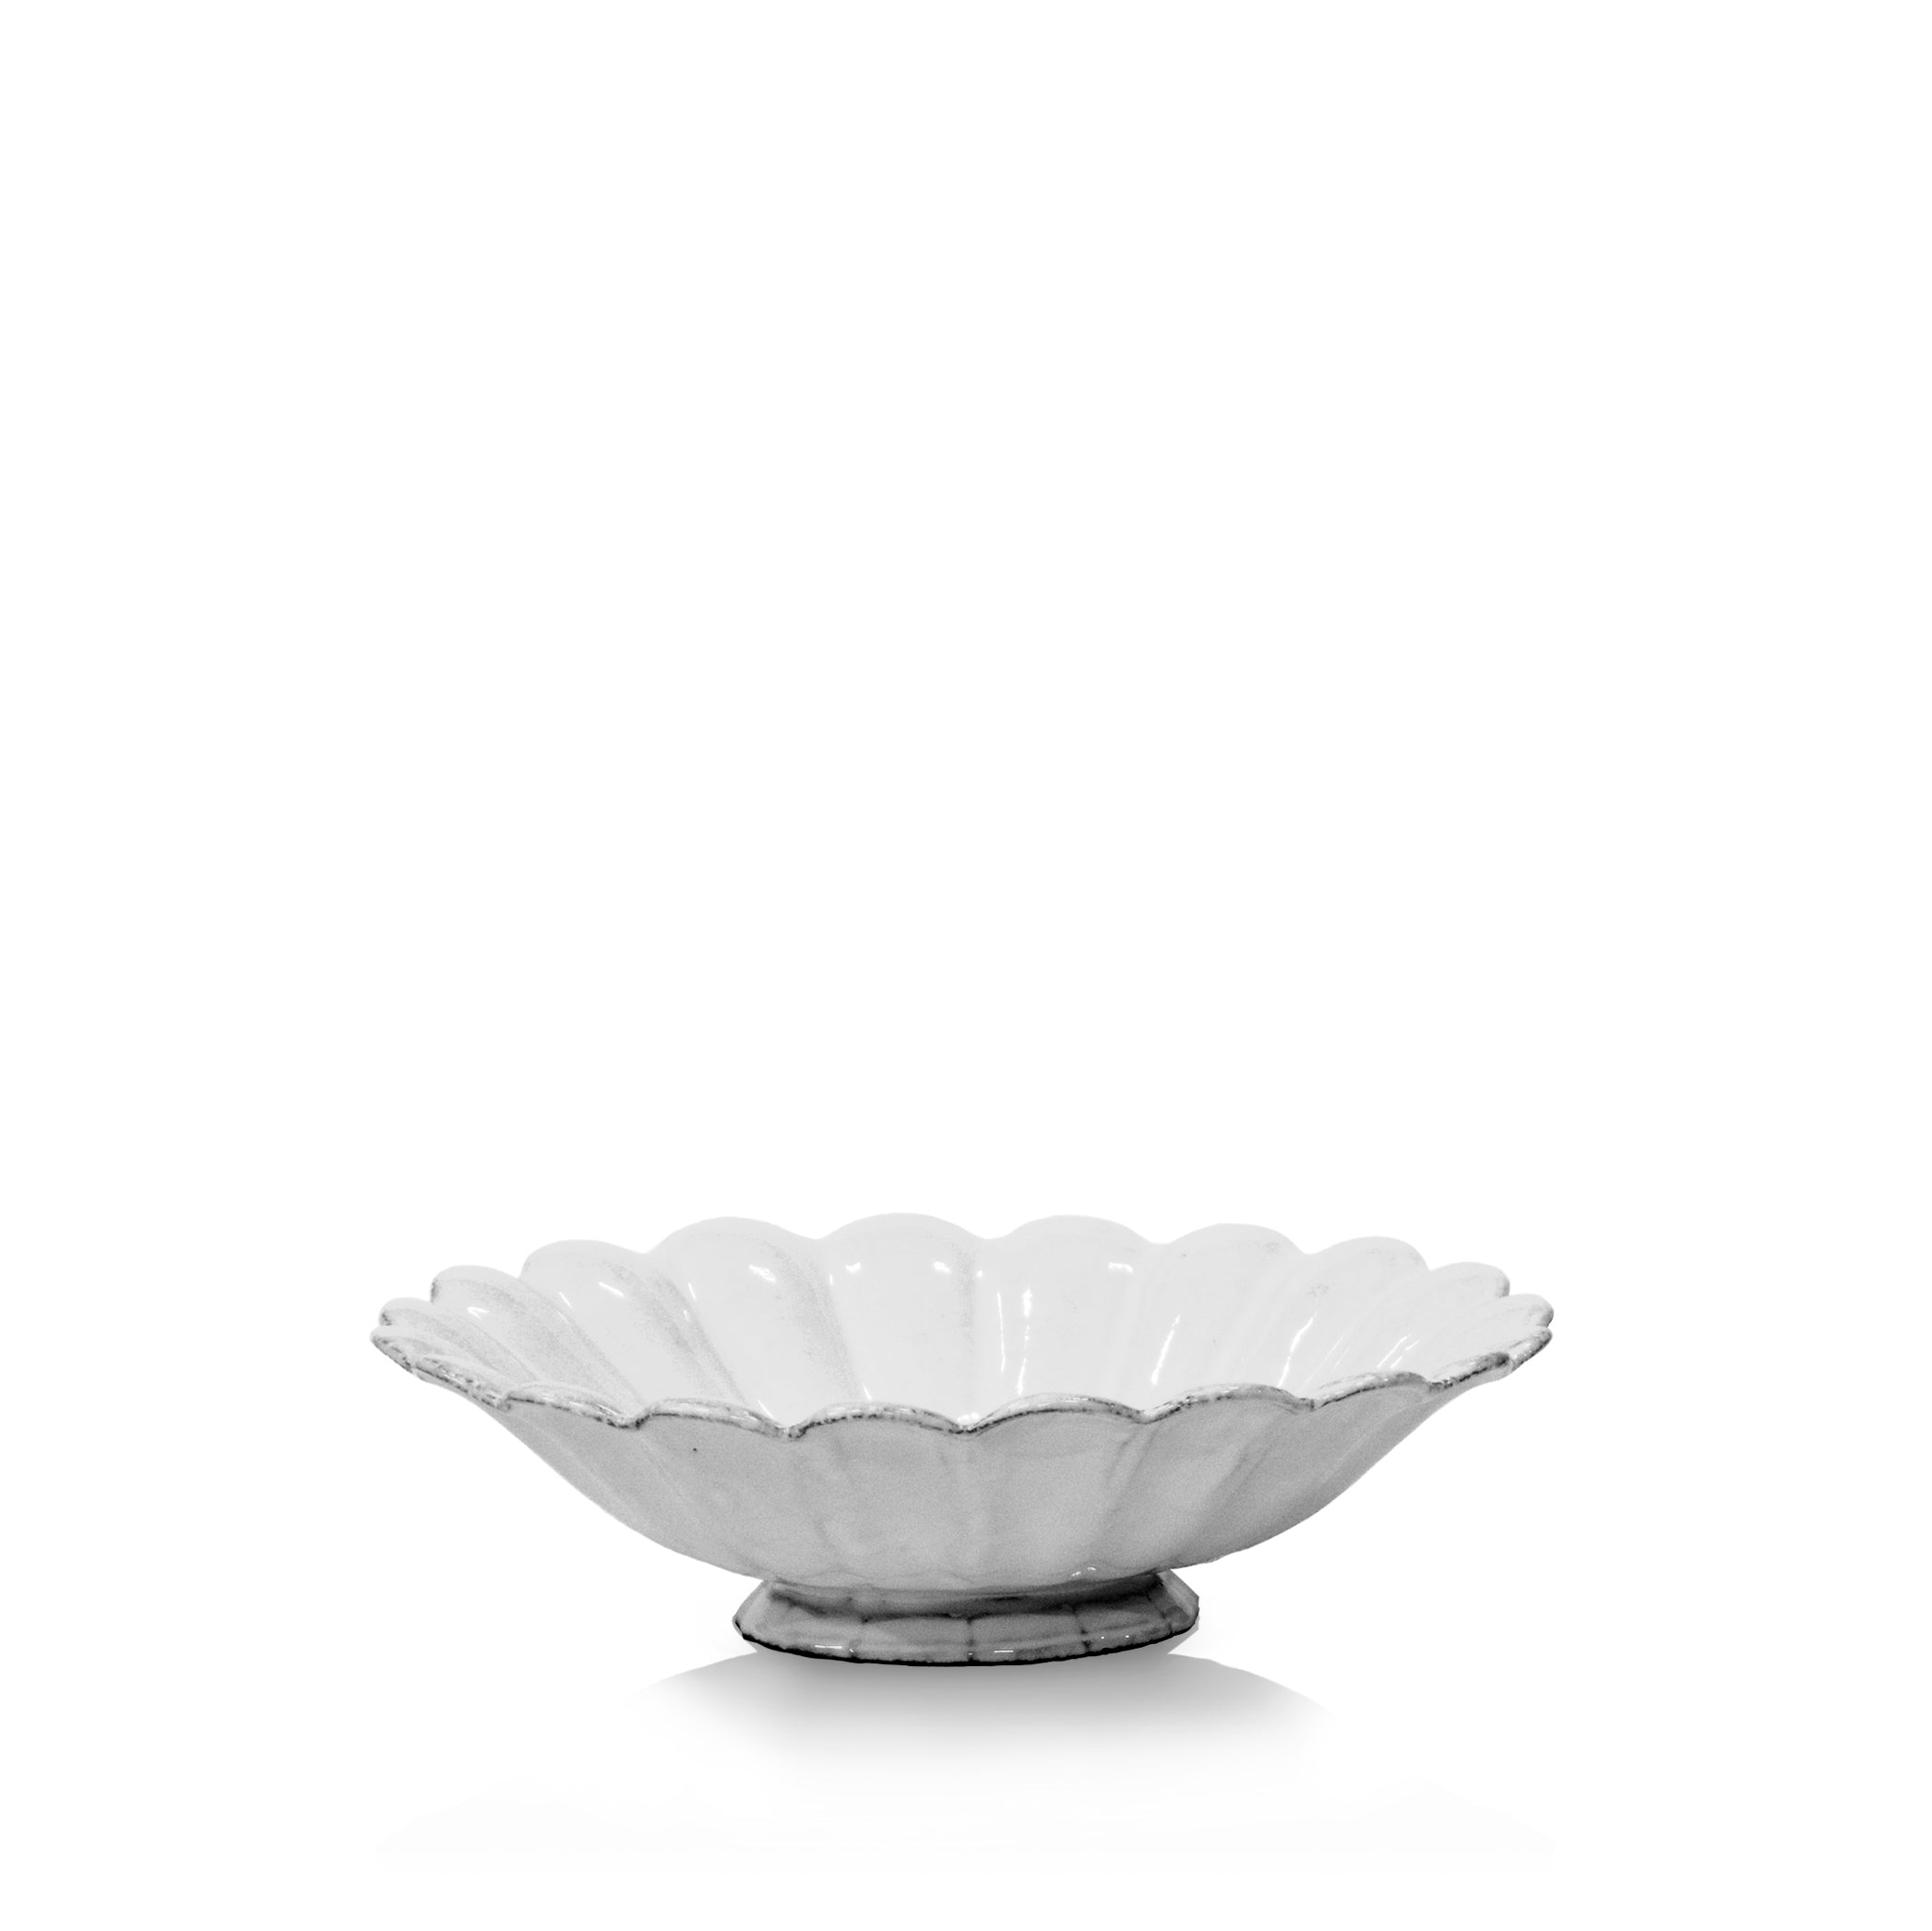 Marguerite Fruit Bowl by Astier de Villatte